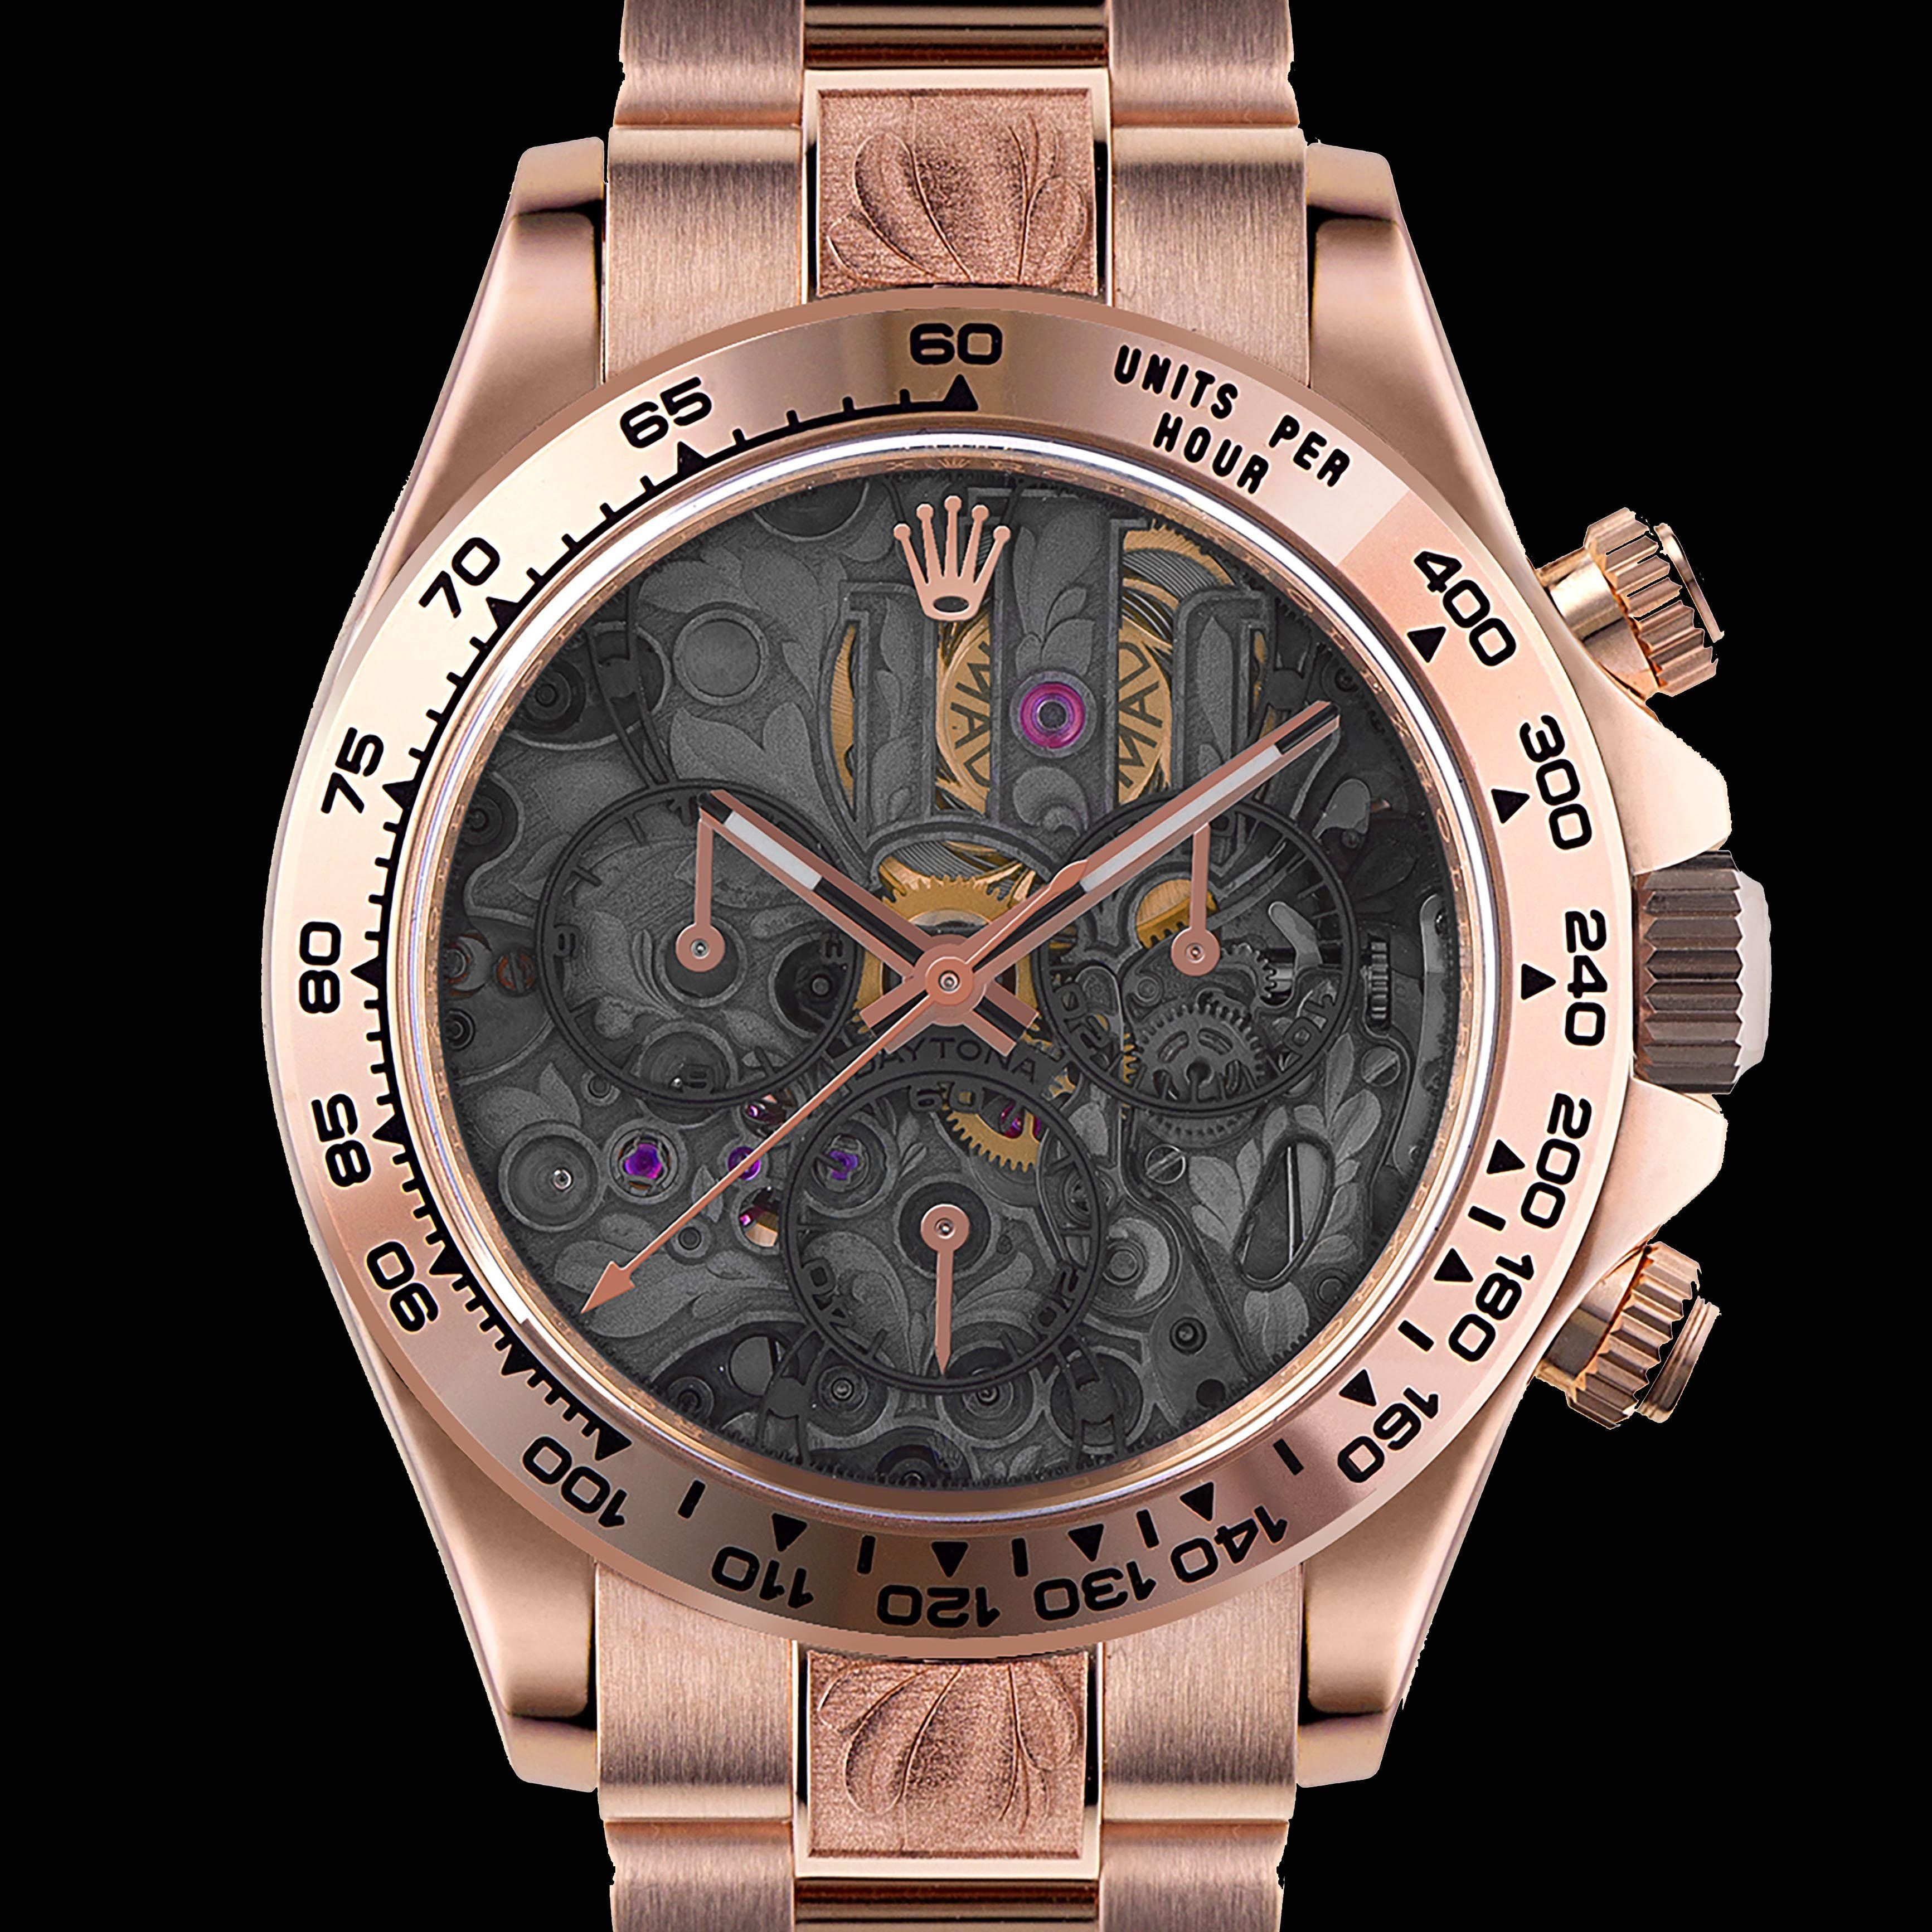 Rolex Daytona Rose Gold Skeleton Dial Watch by MAD Paris